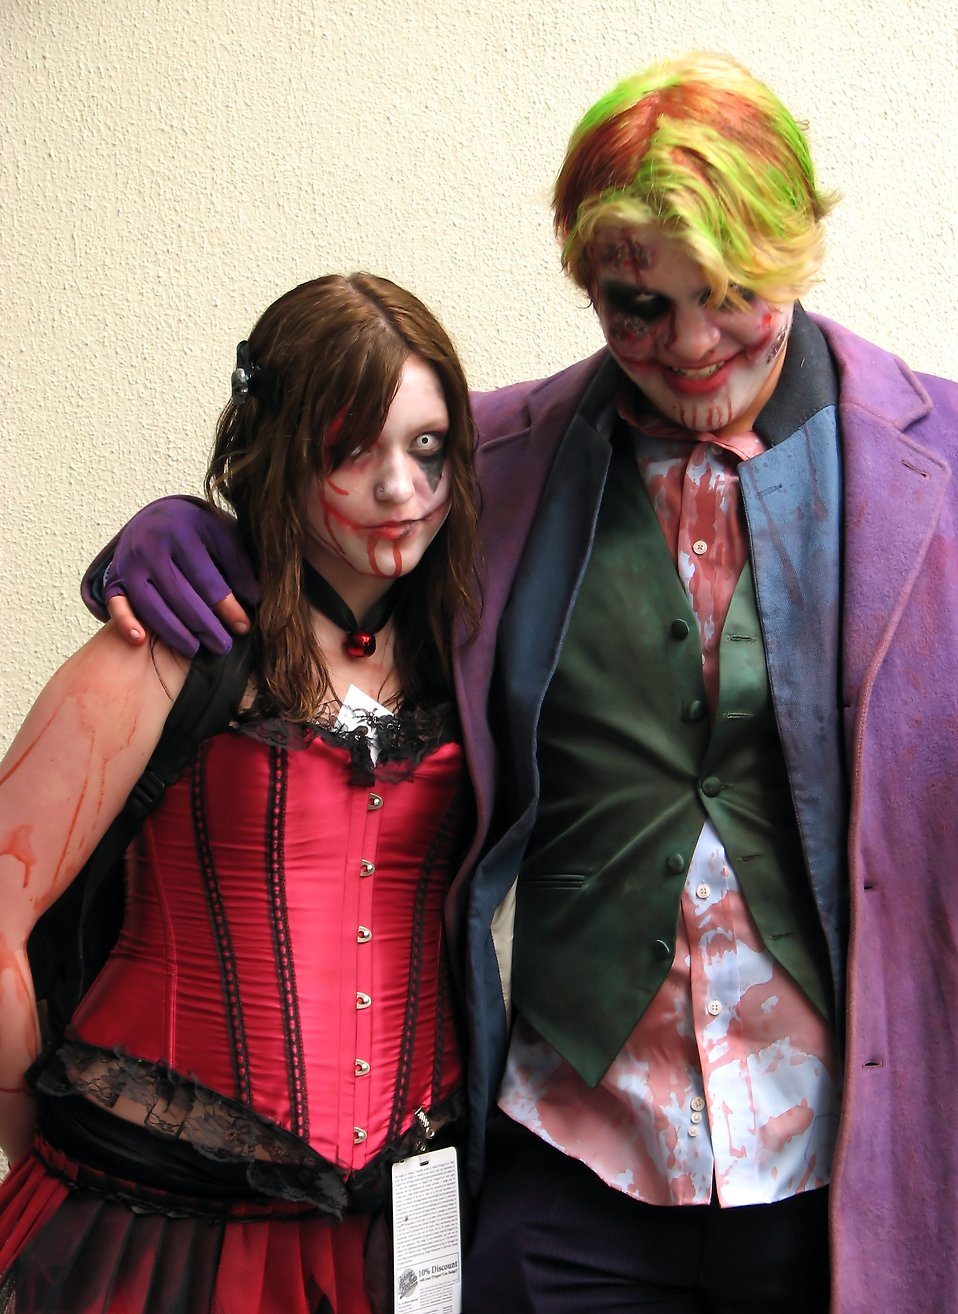 A couple in costumes at Dragoncon 2009 in Atlanta, Georgia : Free Stock Photo